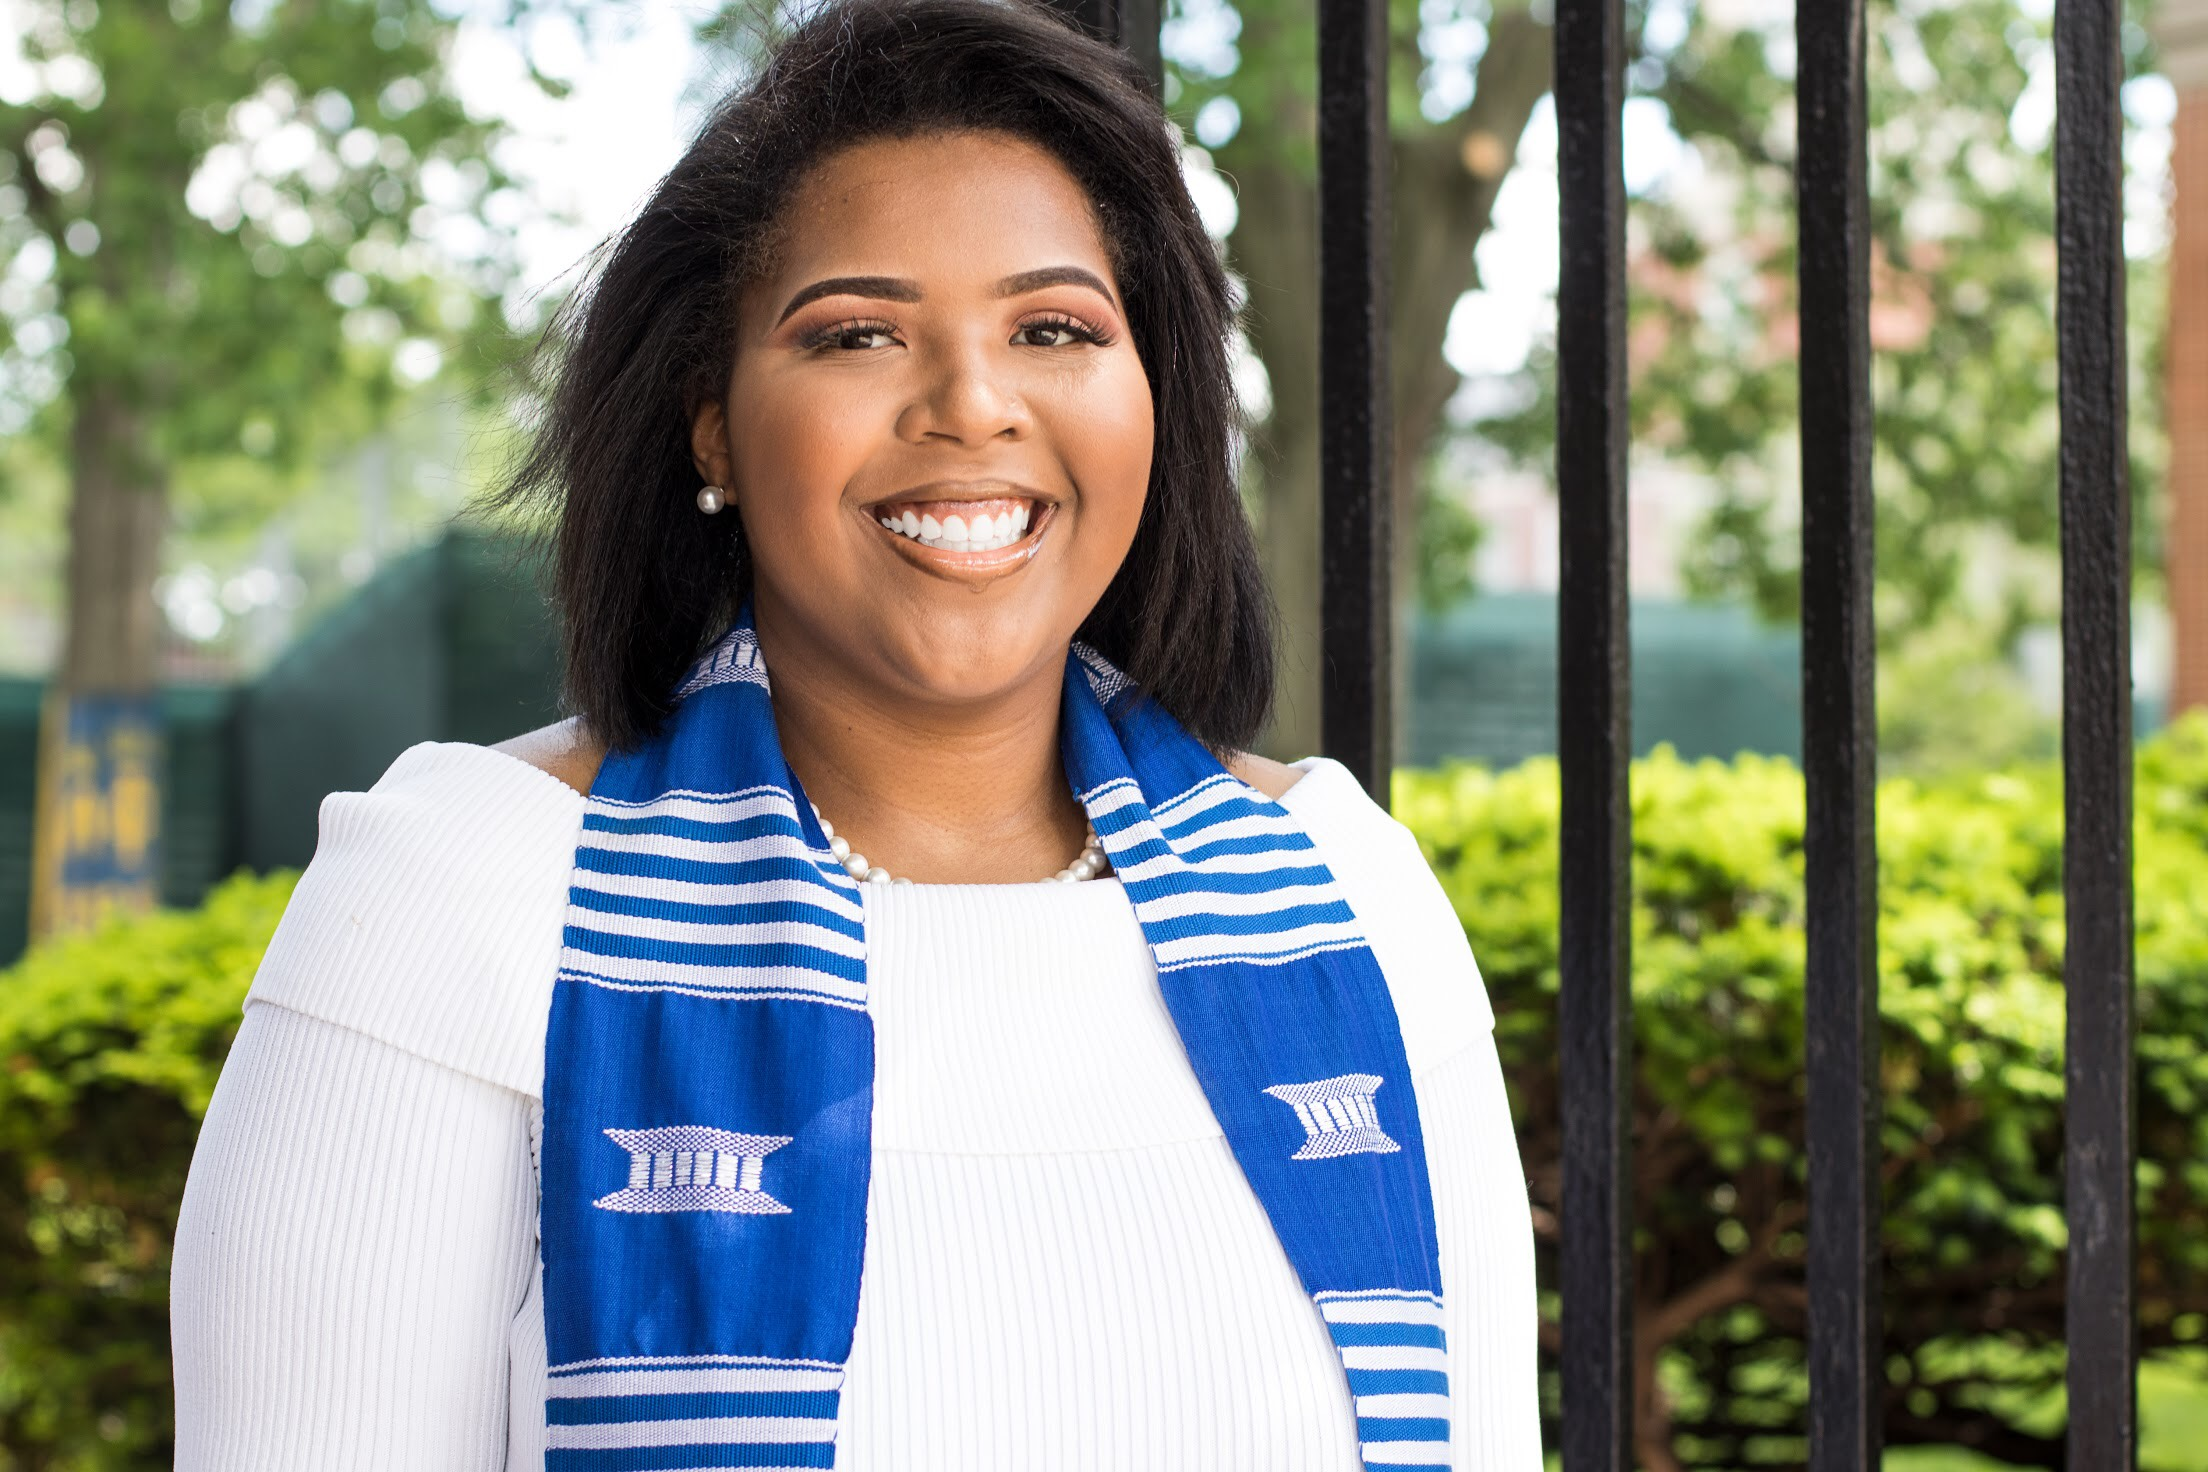 Ray Duncan - Ray Duncan, a 2019 graduate of Howard University with Bachelor of Science in Political Science and Sociology. She was born in Norfolk, Virginia and was raised in Yokosuka, Japan. She plans to work for a couple of years before attending law school.